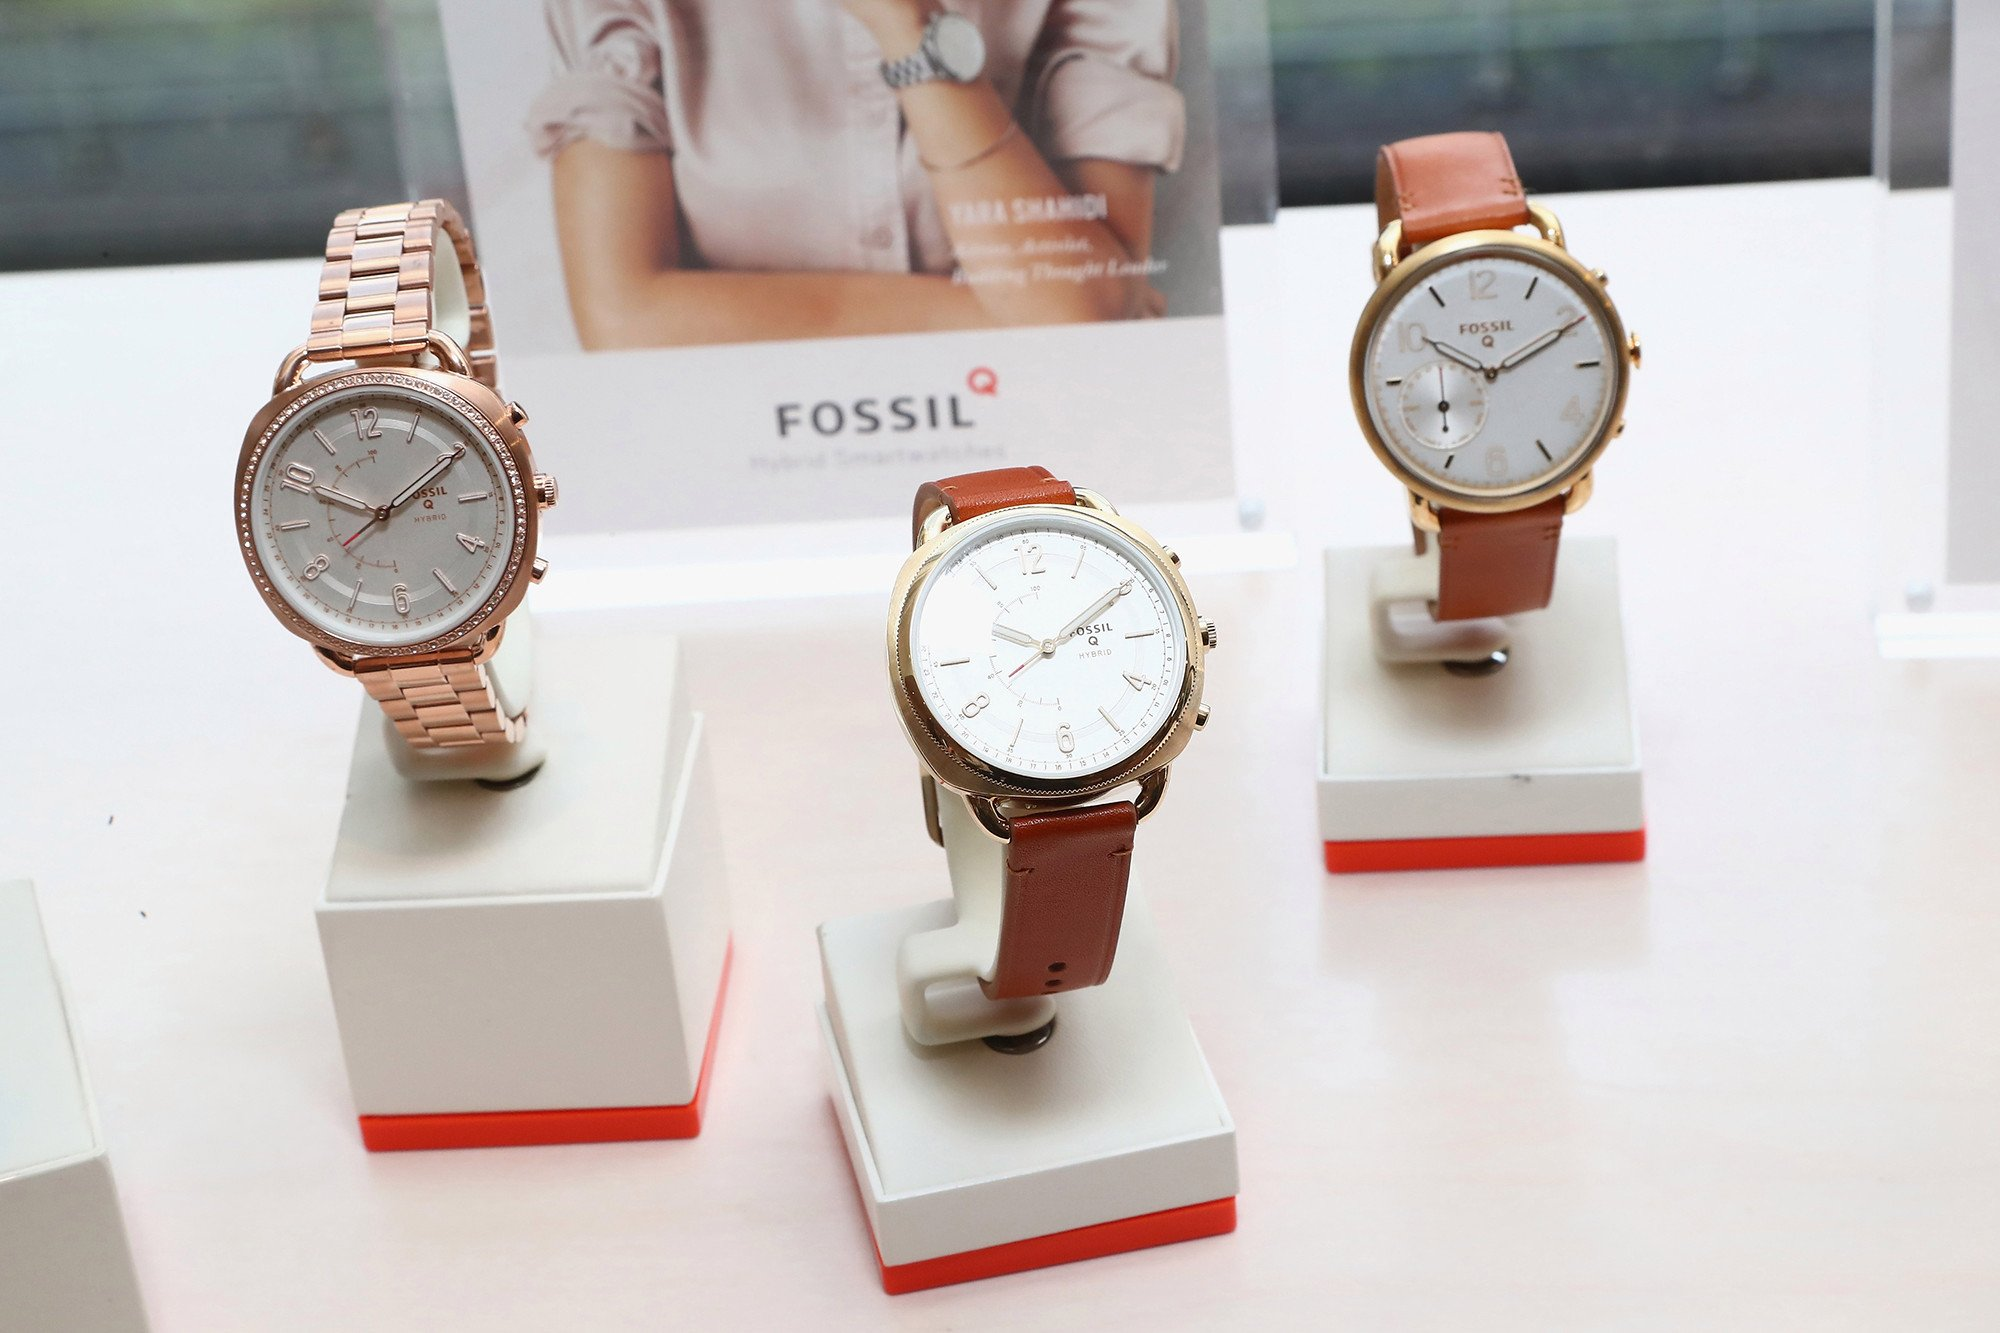 Fossil shares surge on improved holiday sales